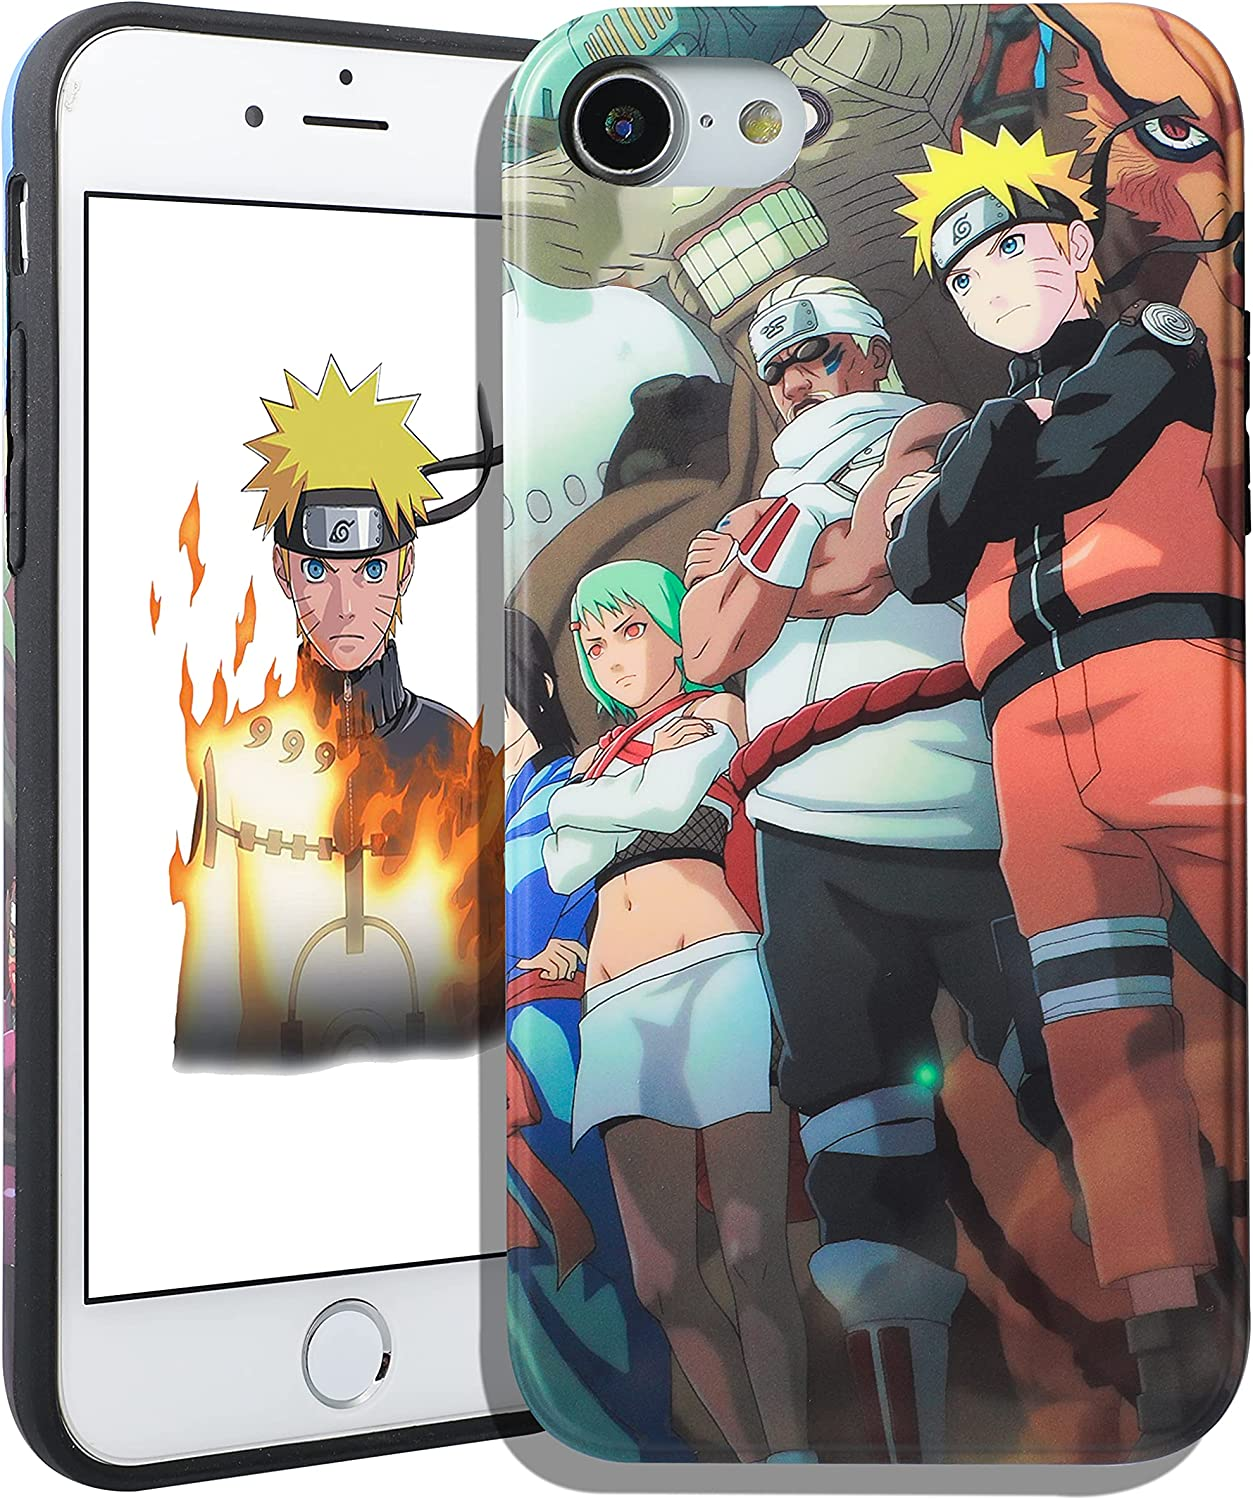 Jowhep for iPhone 7/8/SE 2020 Case Cover Cases Hard TPU Cartoon Anime 3D Funny Fun Design Character Unique Shell for Girls Boys Friends Men - Three People (for iPhone 7/8/SE 2020 4.7